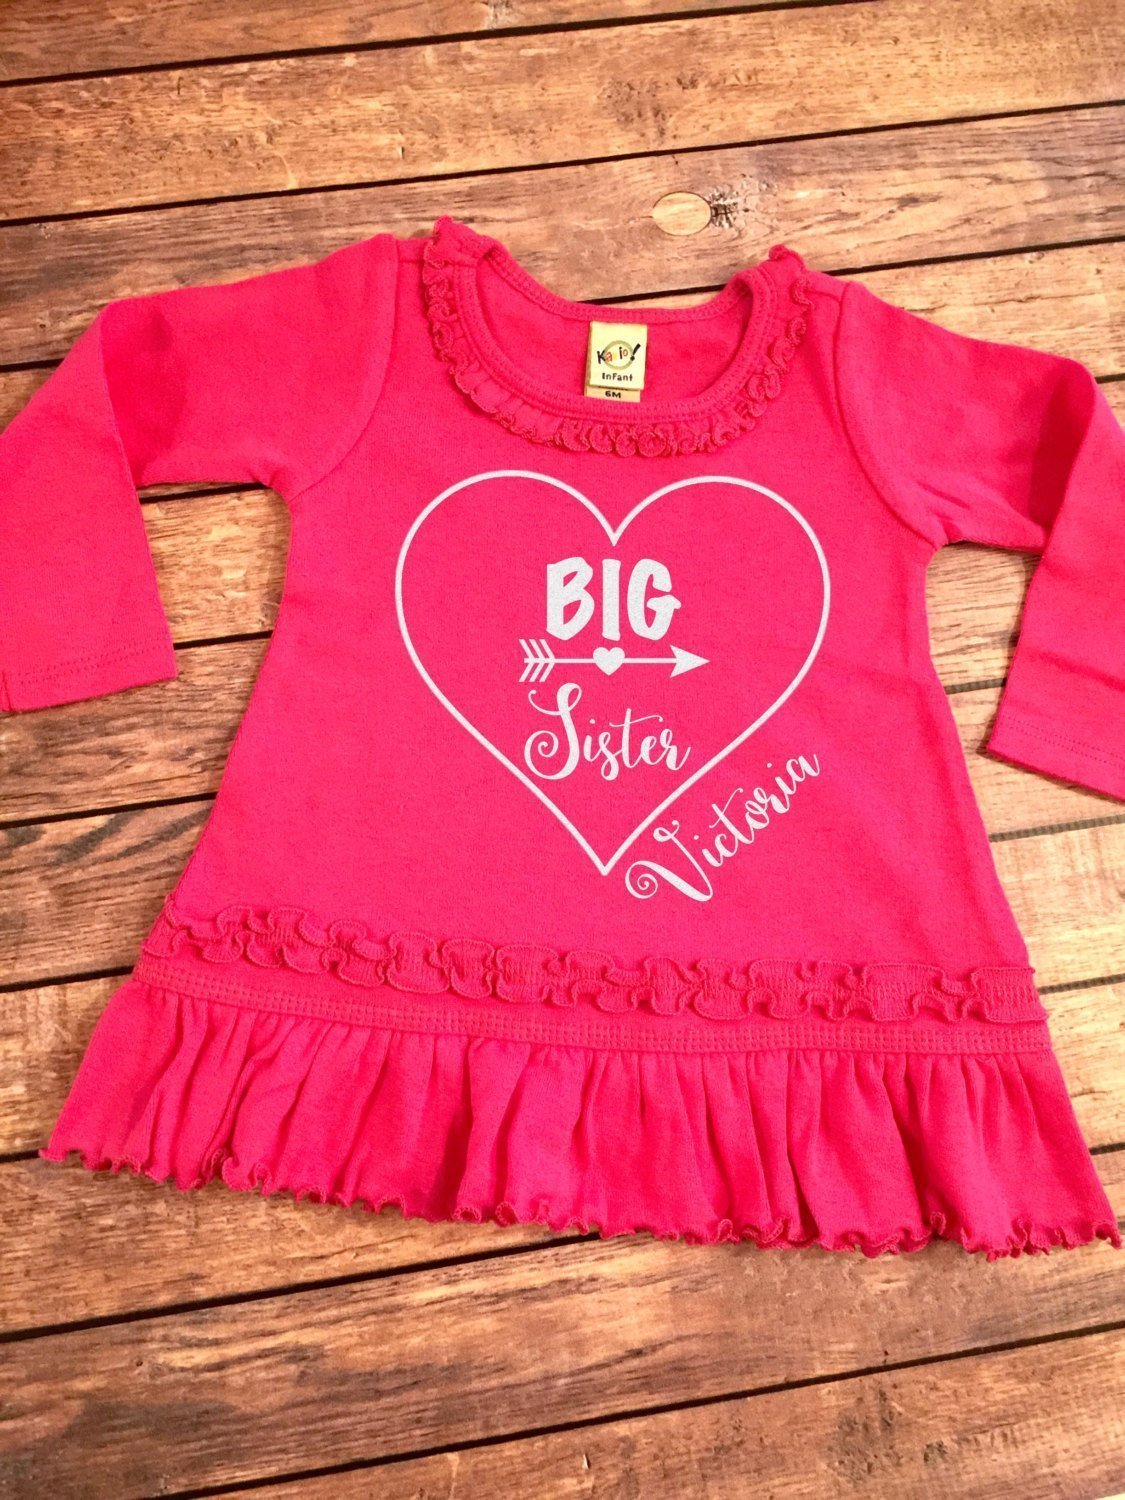 Big Sister Personalized Sparkle Striped Ruffle trimmed Dress, Announcement dress, Baby pink ruffle dress, Children's announcement dress,